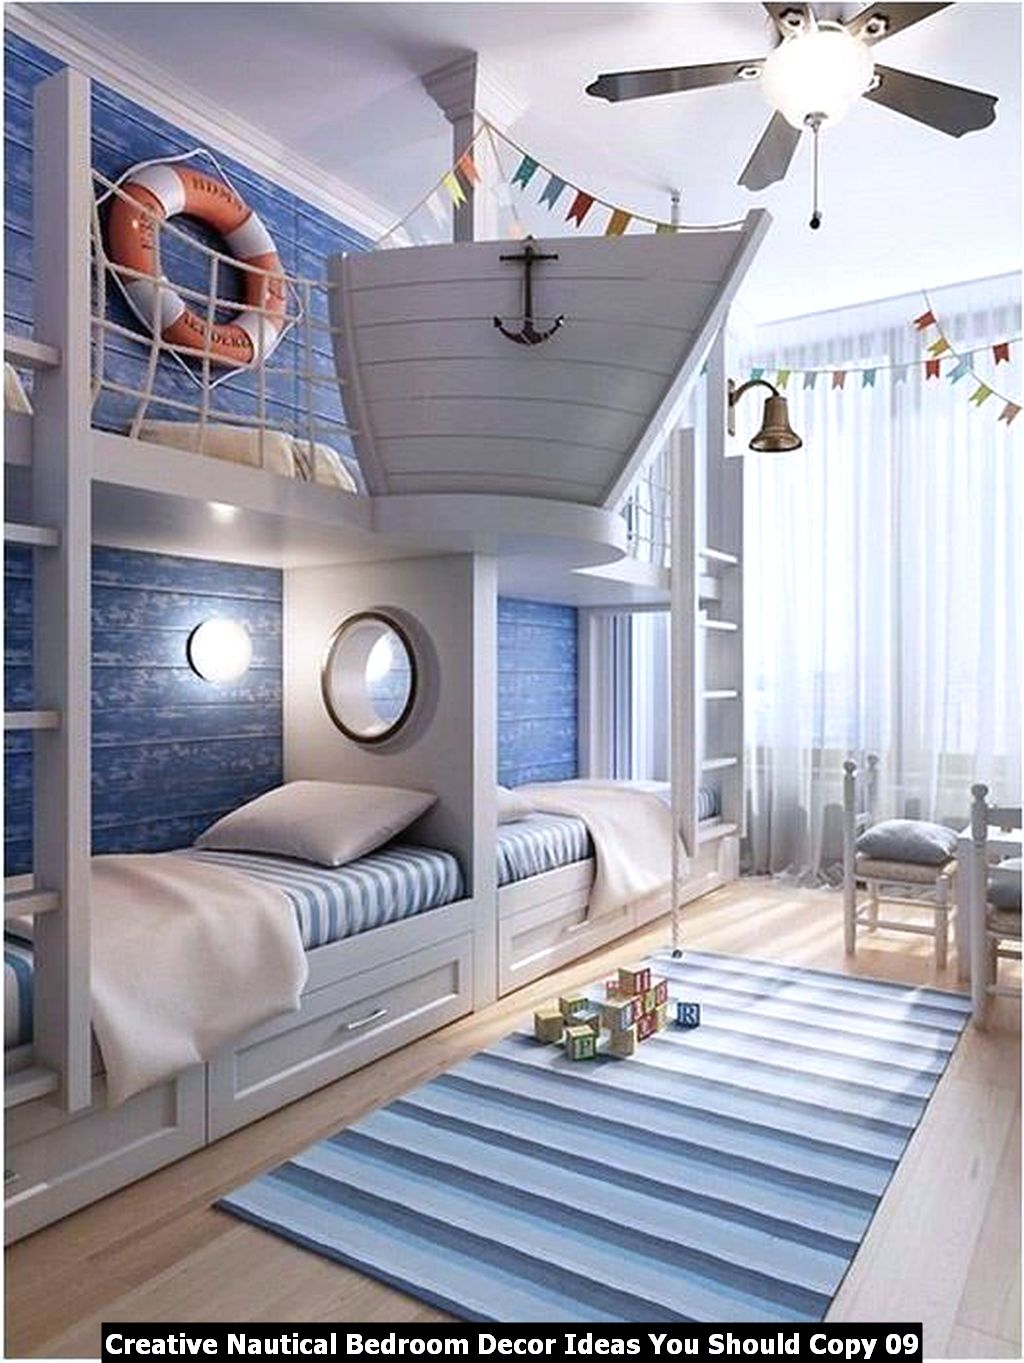 Creative Nautical Bedroom Decor Ideas You Should Copy 09